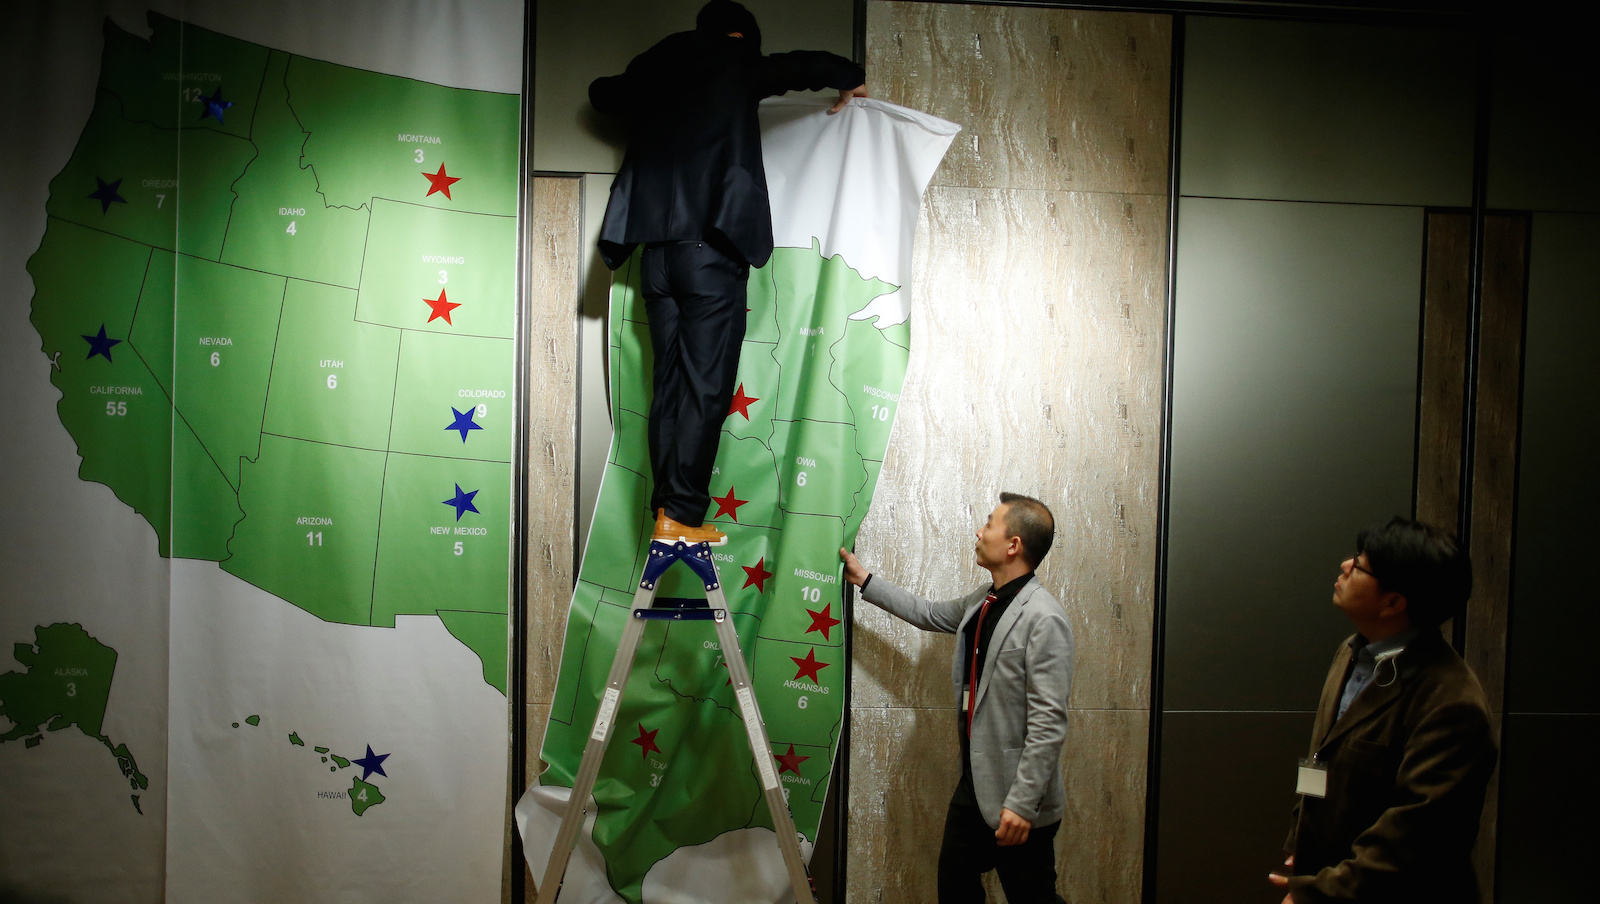 A man removes the Electoral College Map